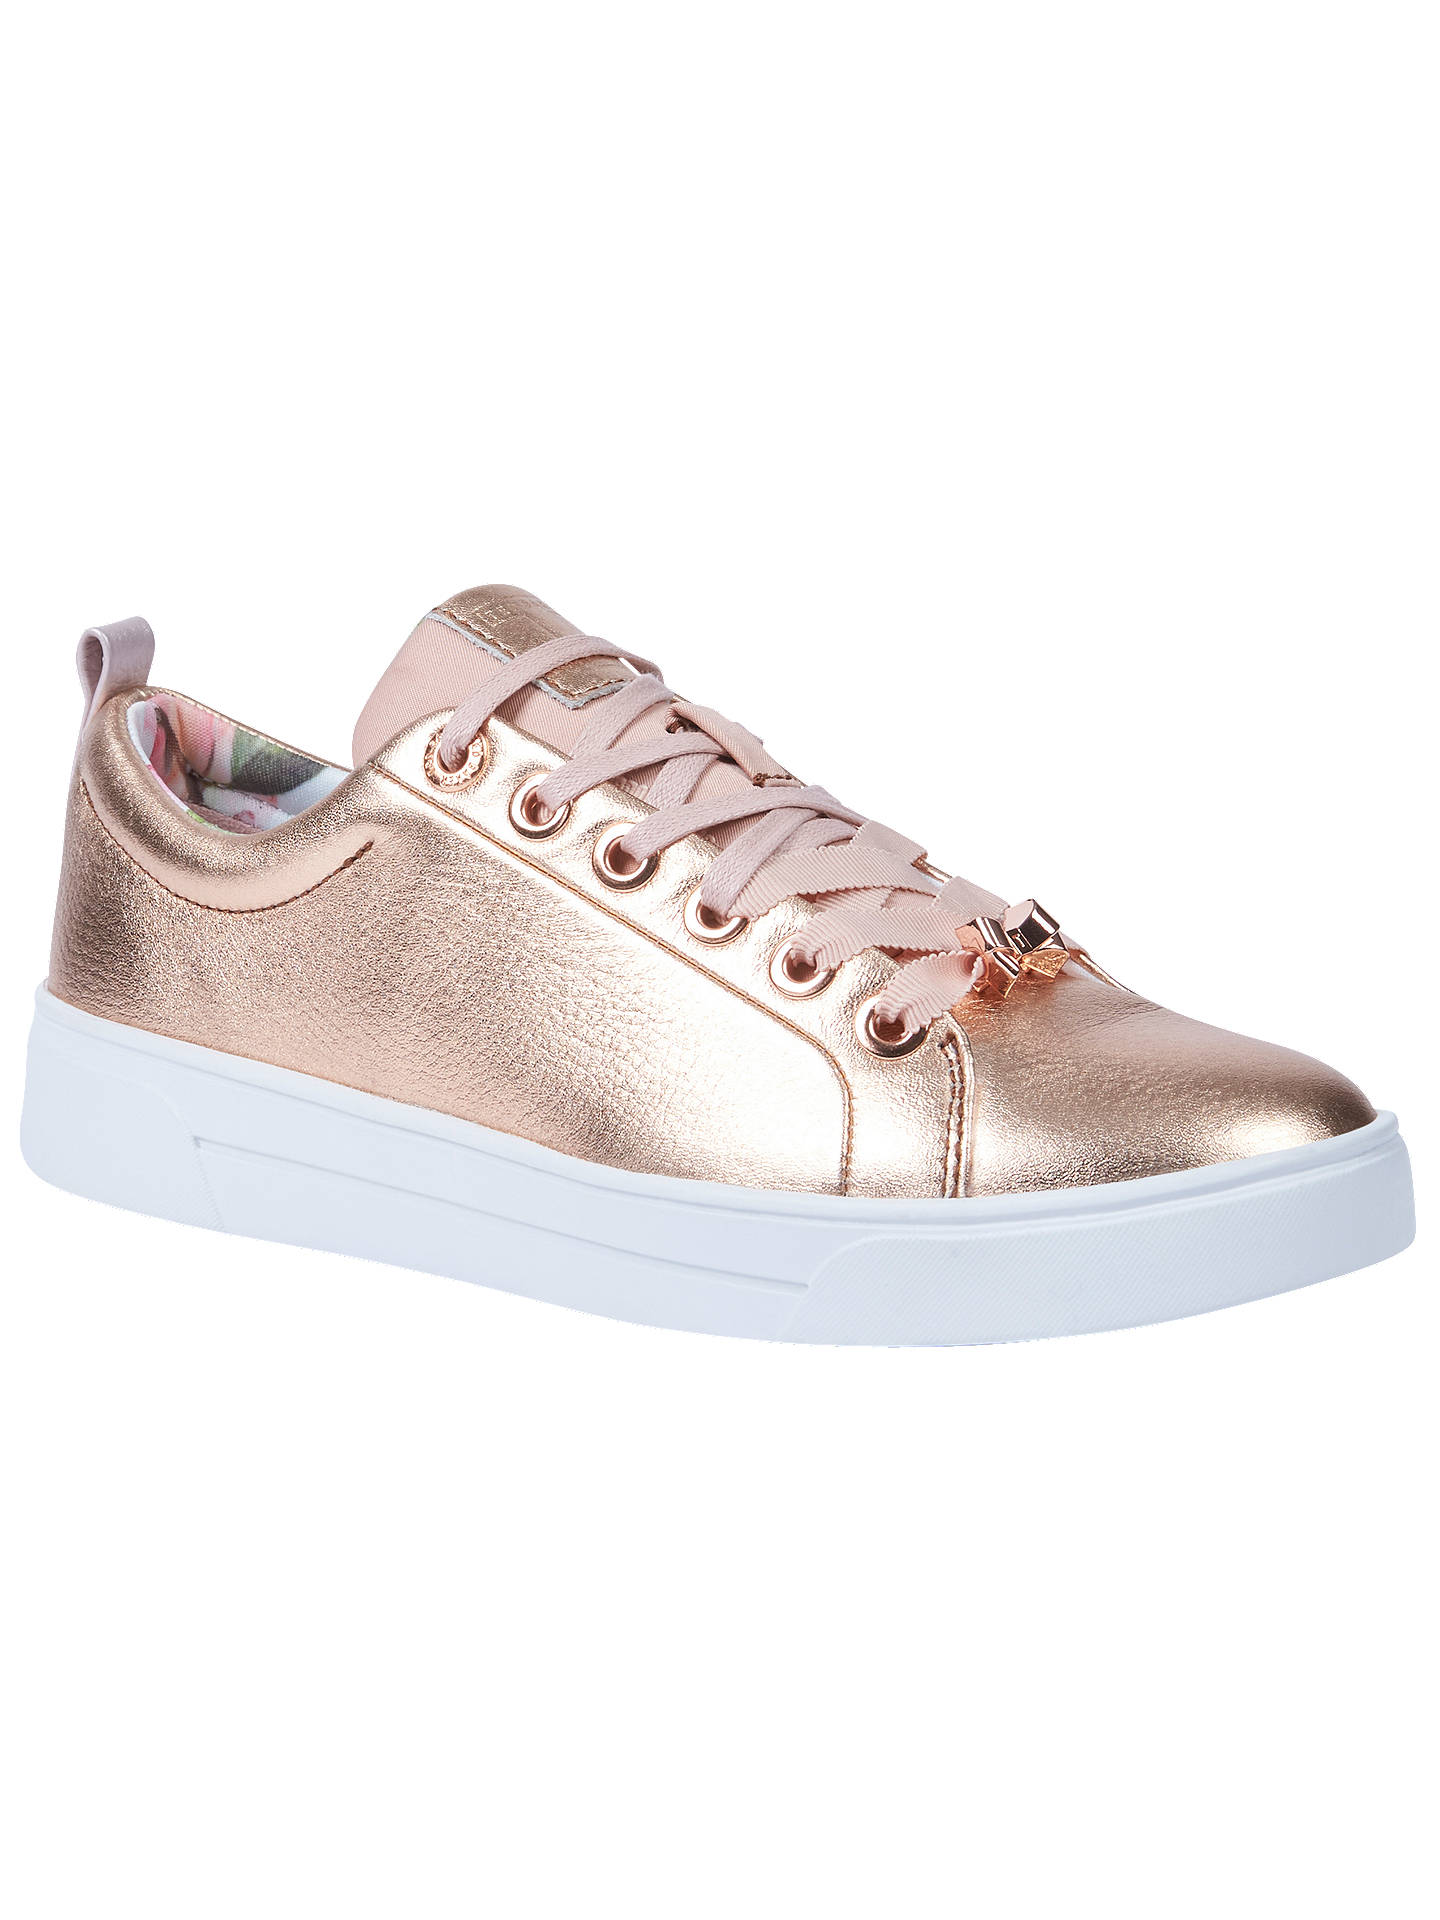 02ebf2a1f9b63 Buy Ted Baker Kellei Lace Up Trainers